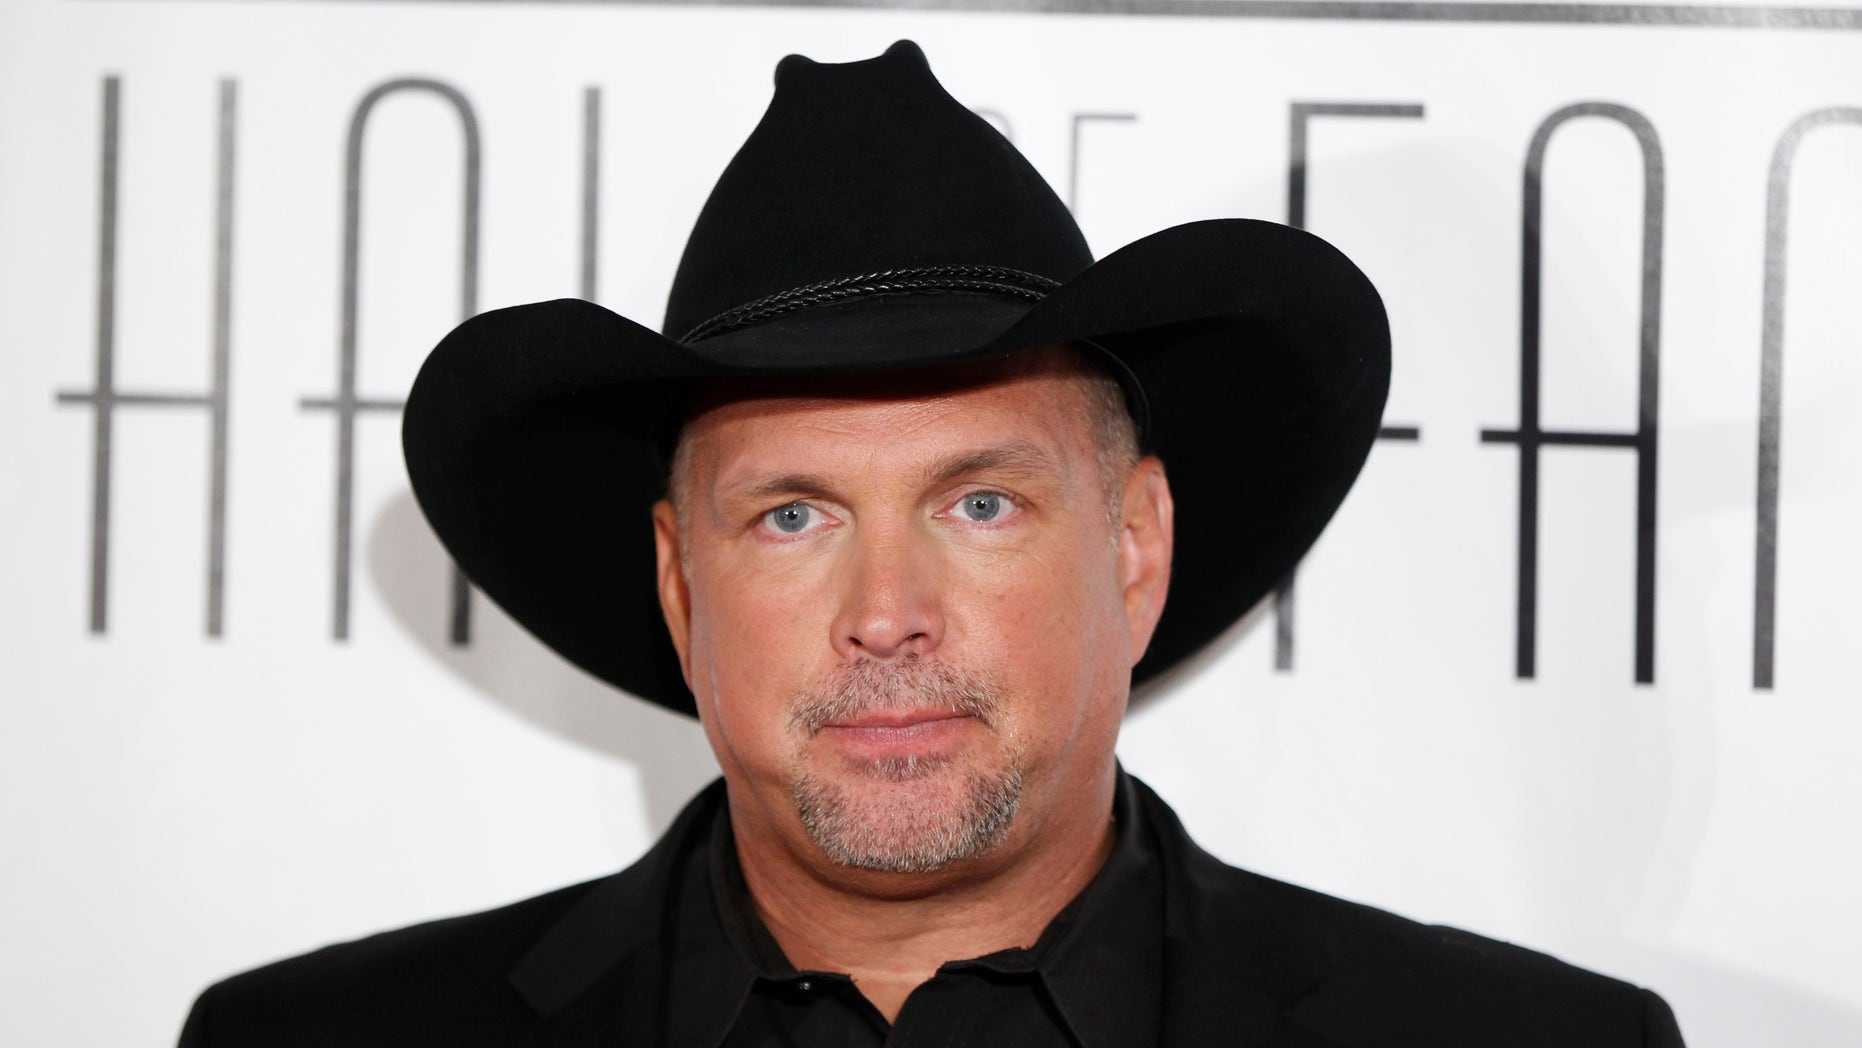 A Seattle karaoke host sang country star Garth Brooks hit